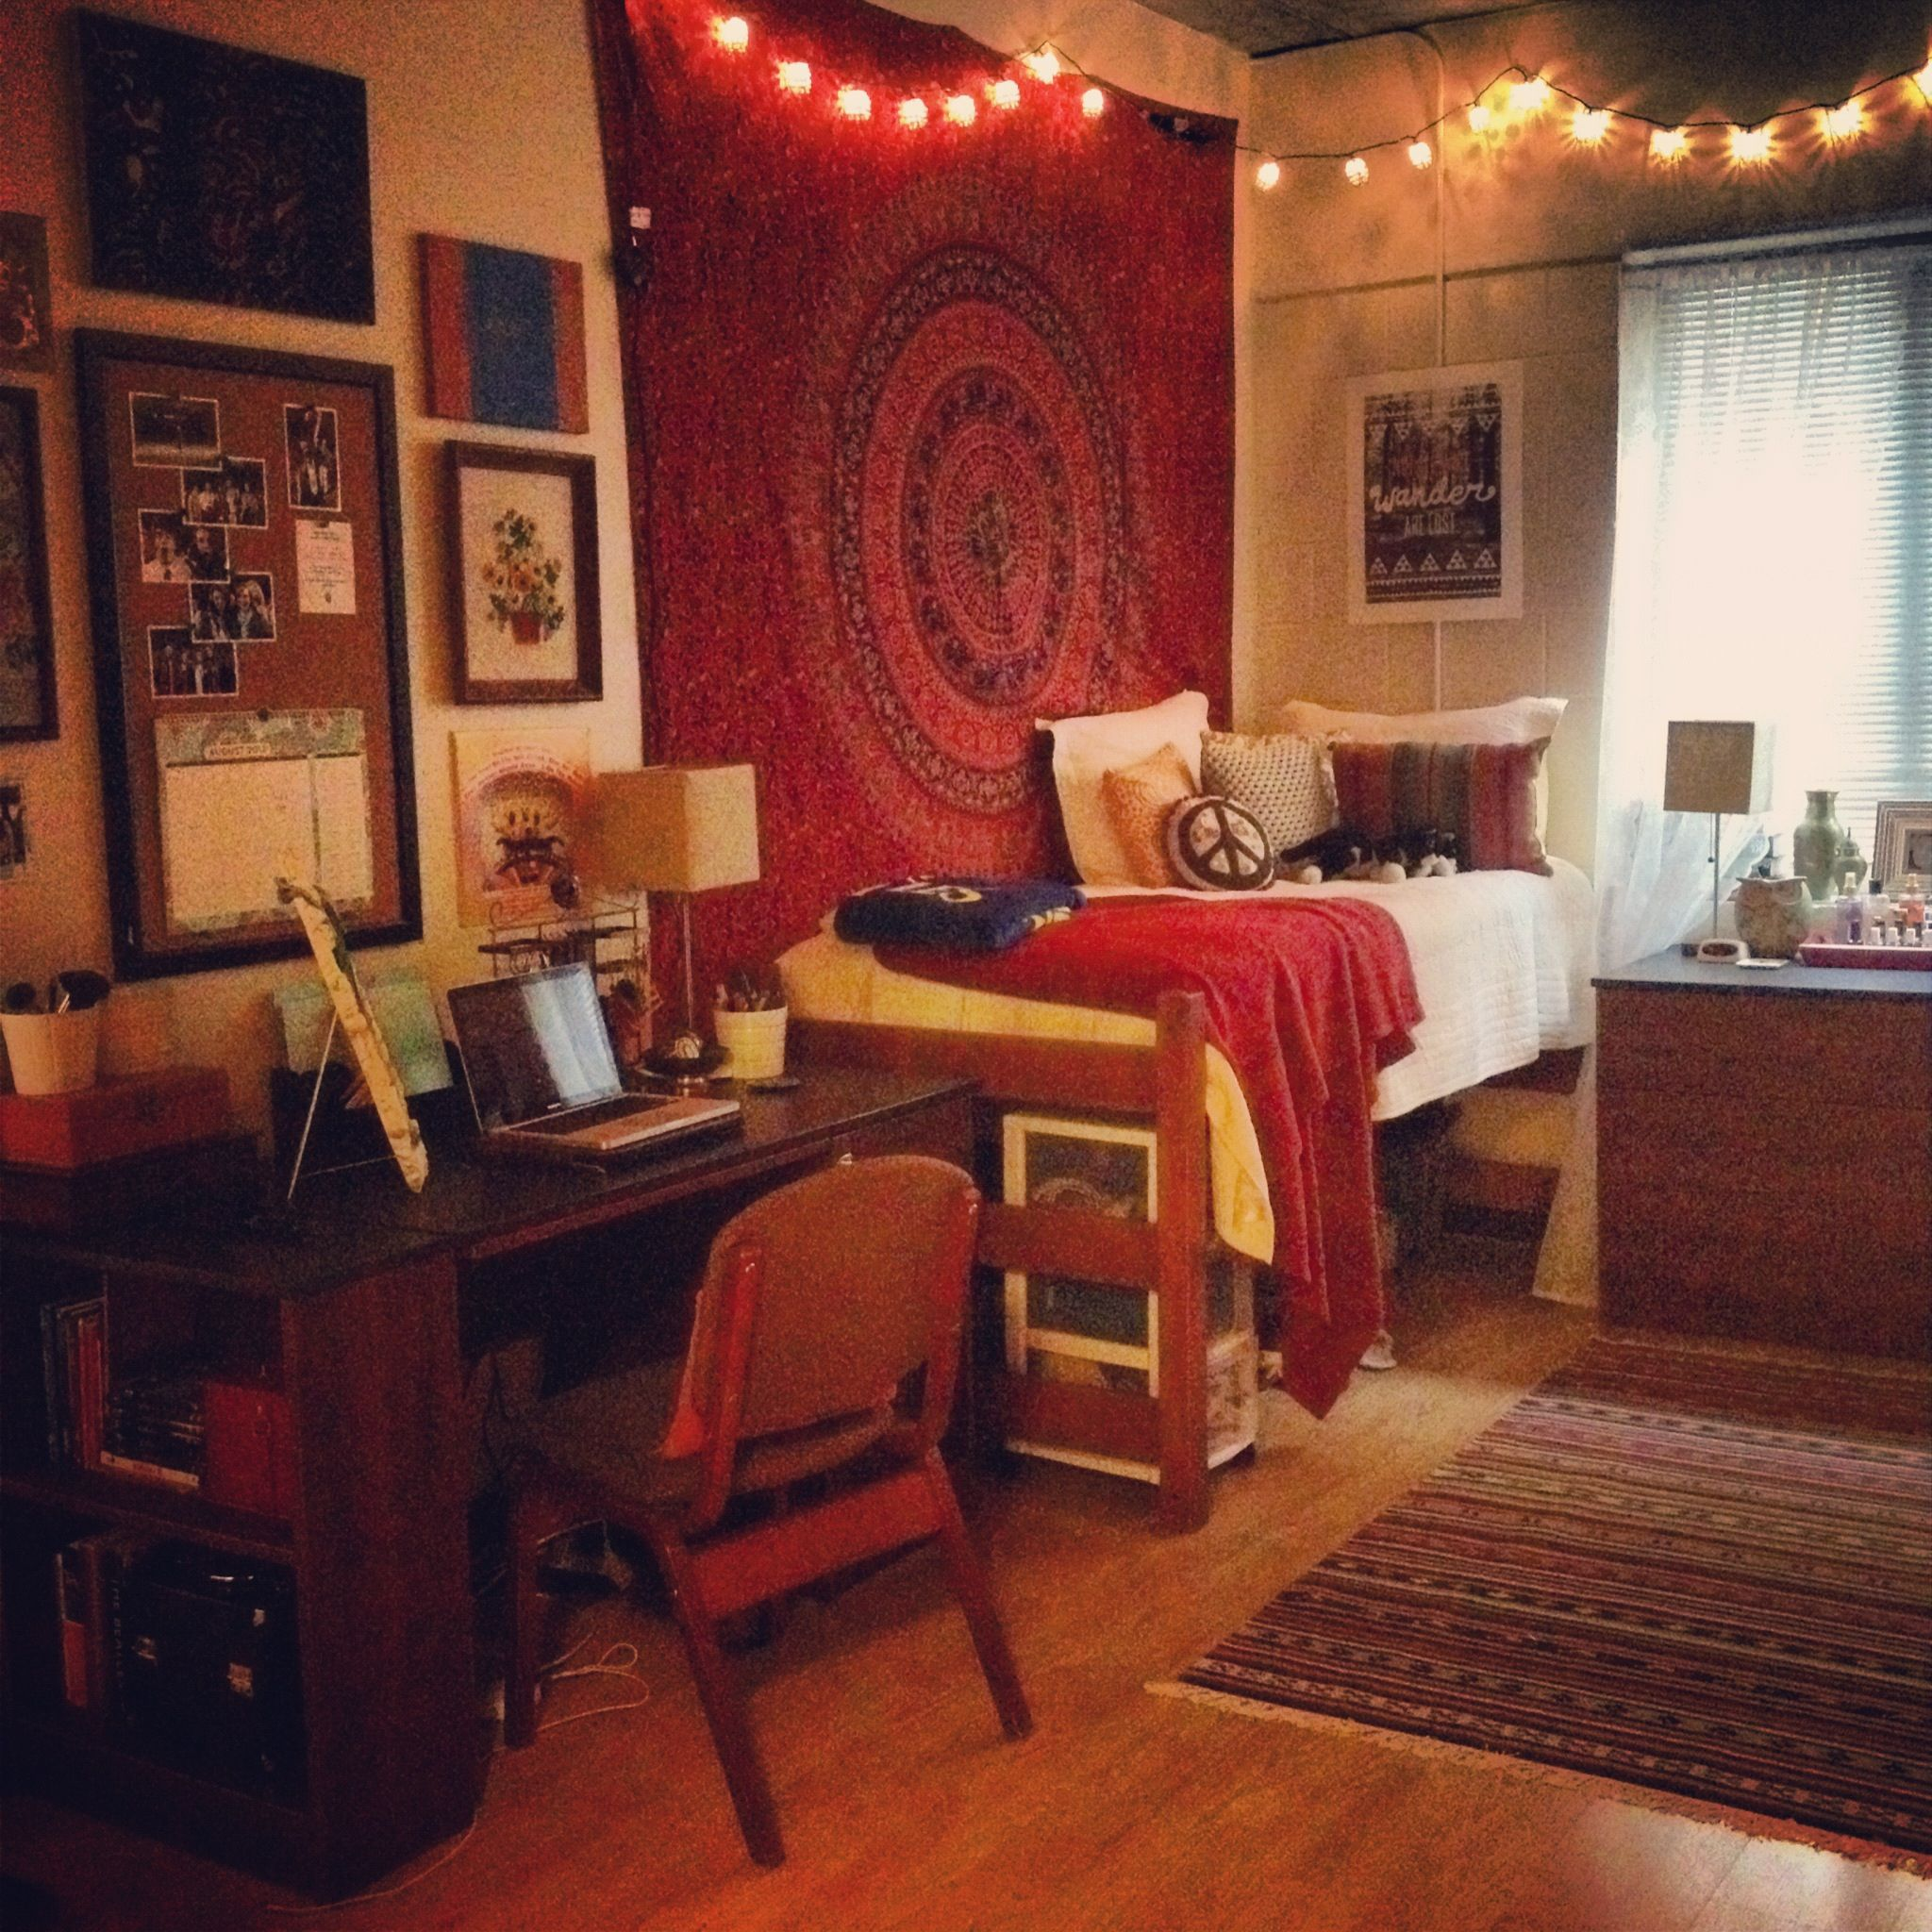 College Home Decor: This Is Perfect. It's Warm, Inviting, Clutter-free, And